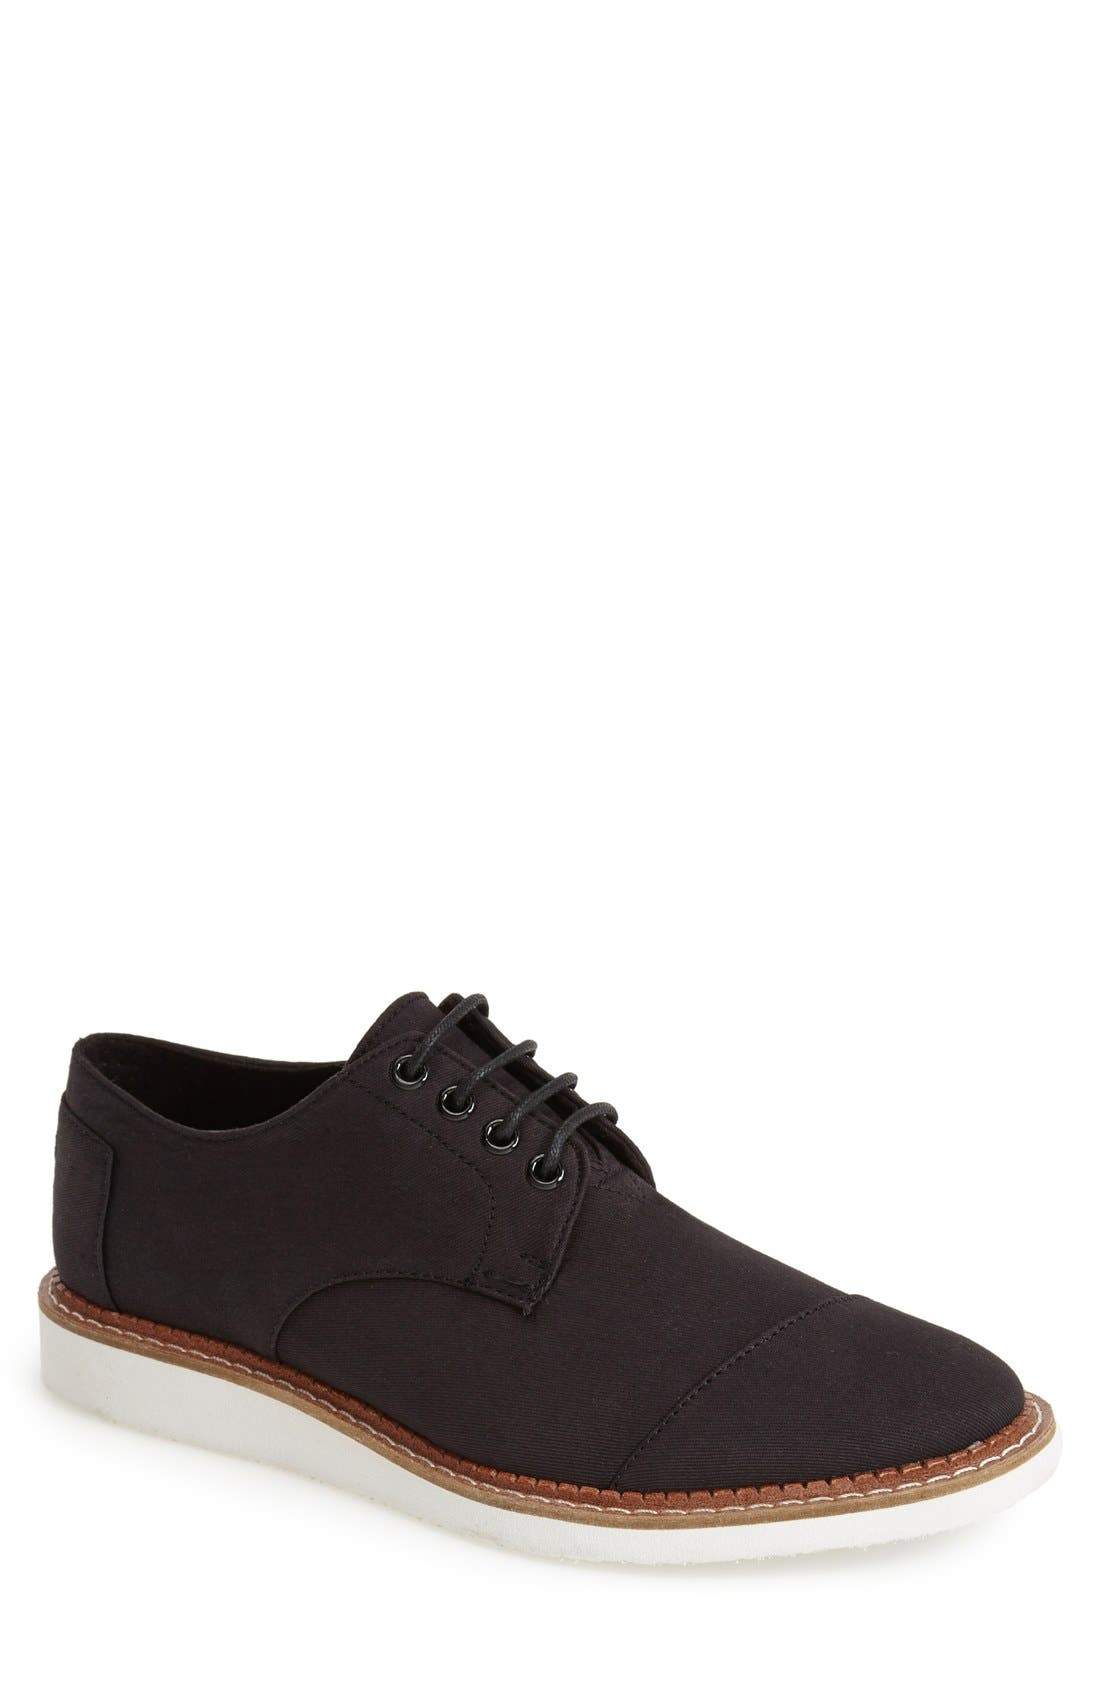 'Classic Brogue' Cotton Twill Derby,                             Main thumbnail 1, color,                             001